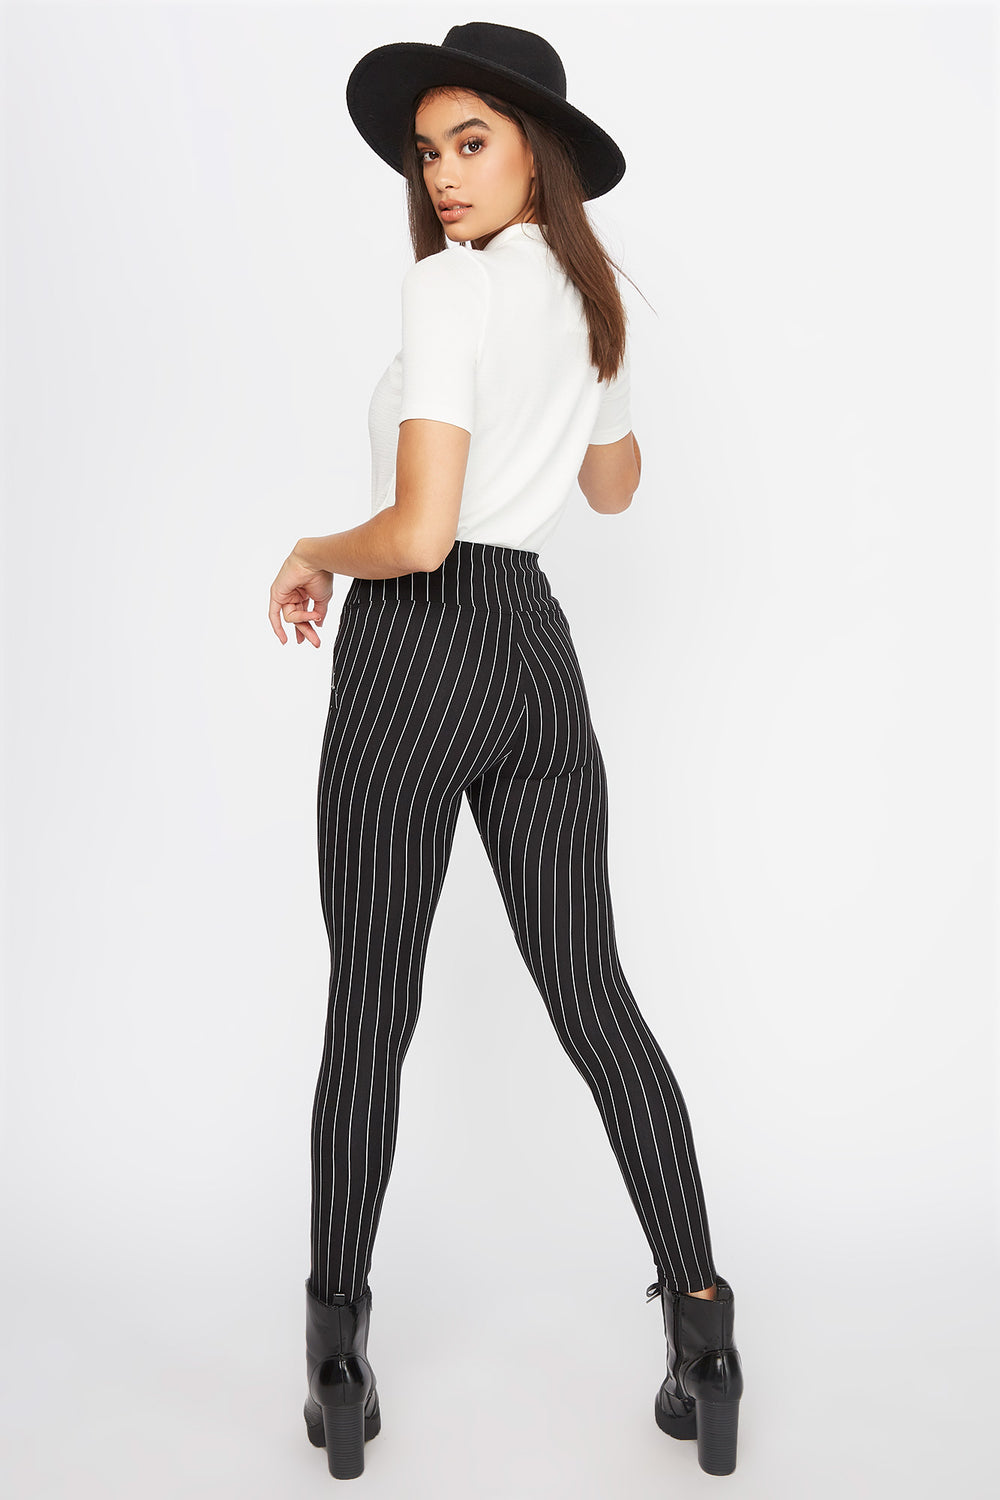 Printed Soft Zip Legging Black with White